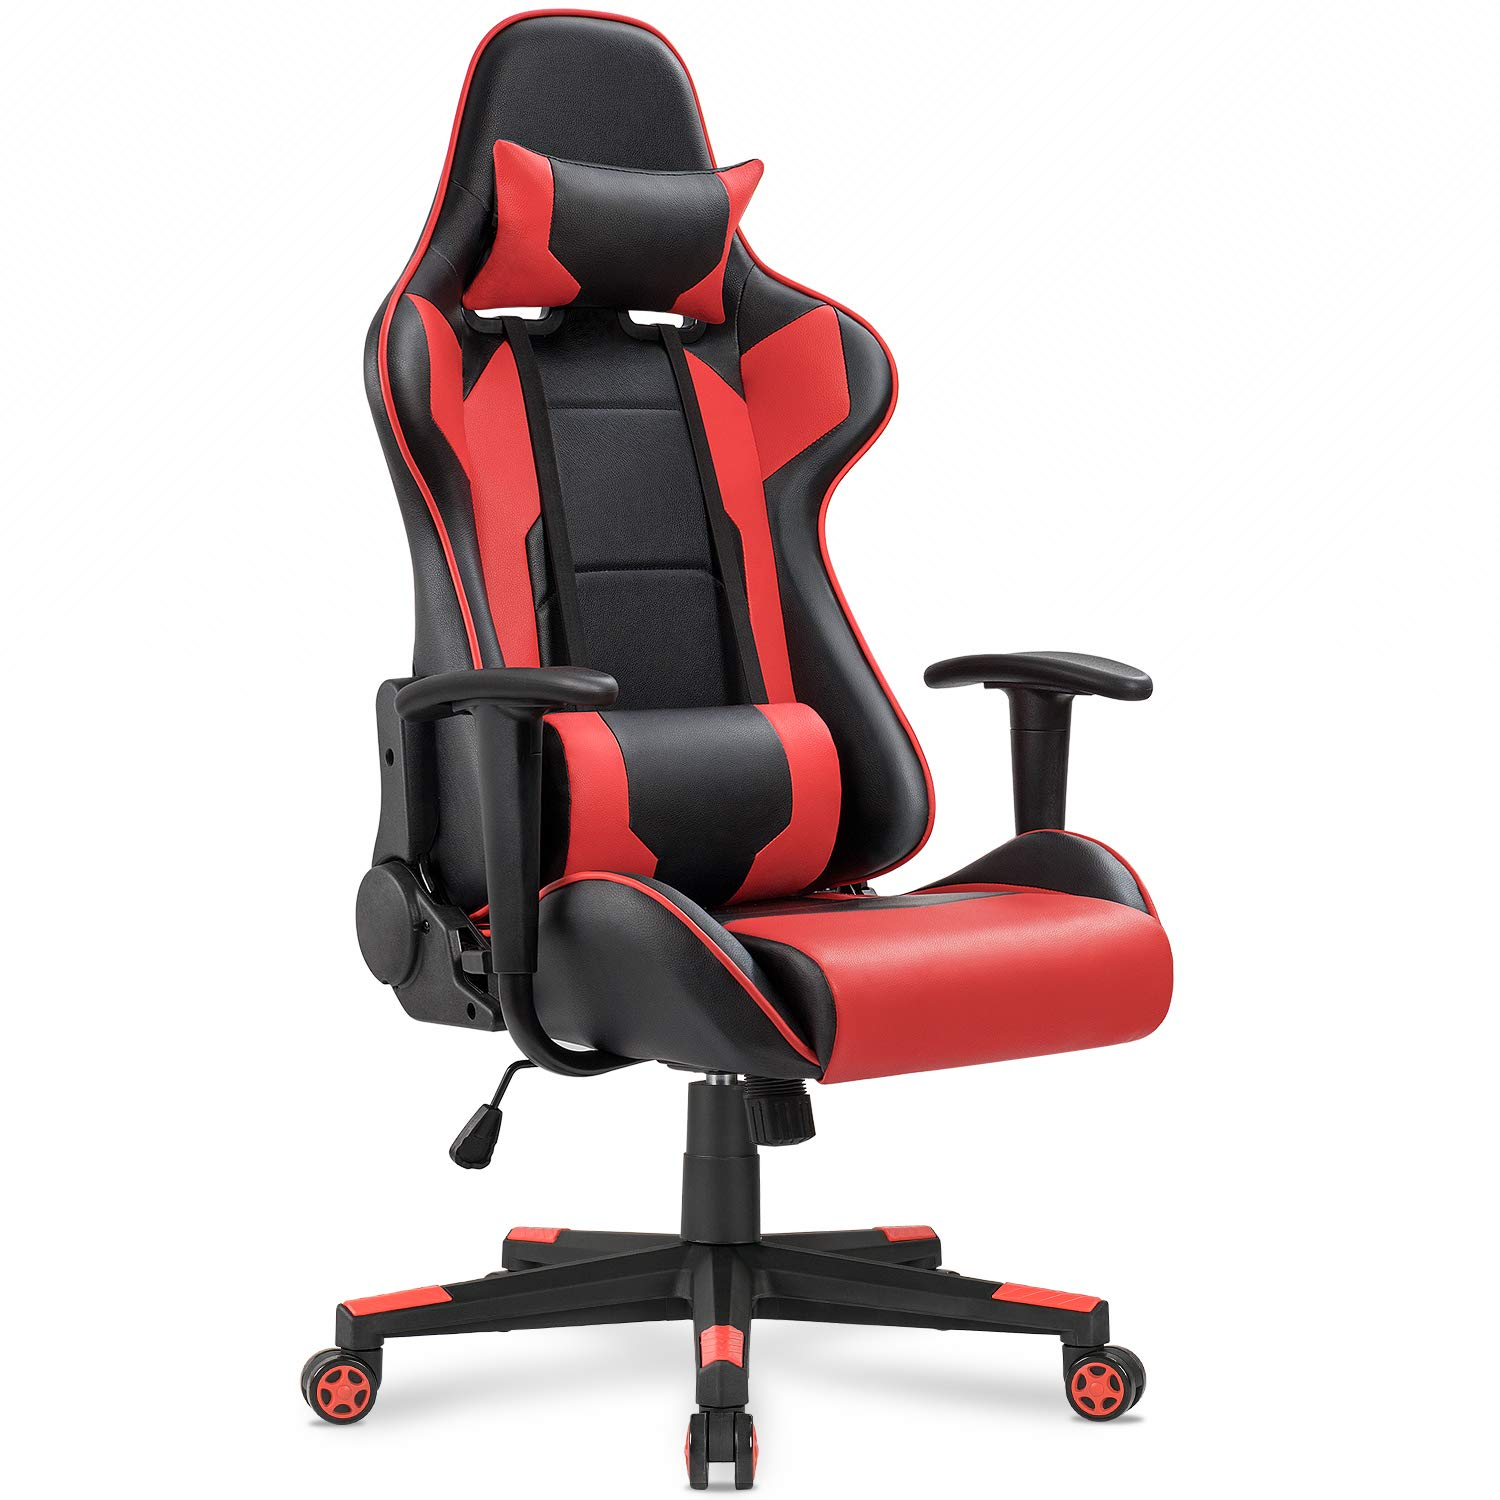 Homall Gaming Chair Office Chair High Back Computer Chair PU Leather Desk Chair PC Racing Executive Ergonomic Adjustable Swivel Task Chair with Headrest and Lumbar Support (Red) by Homall